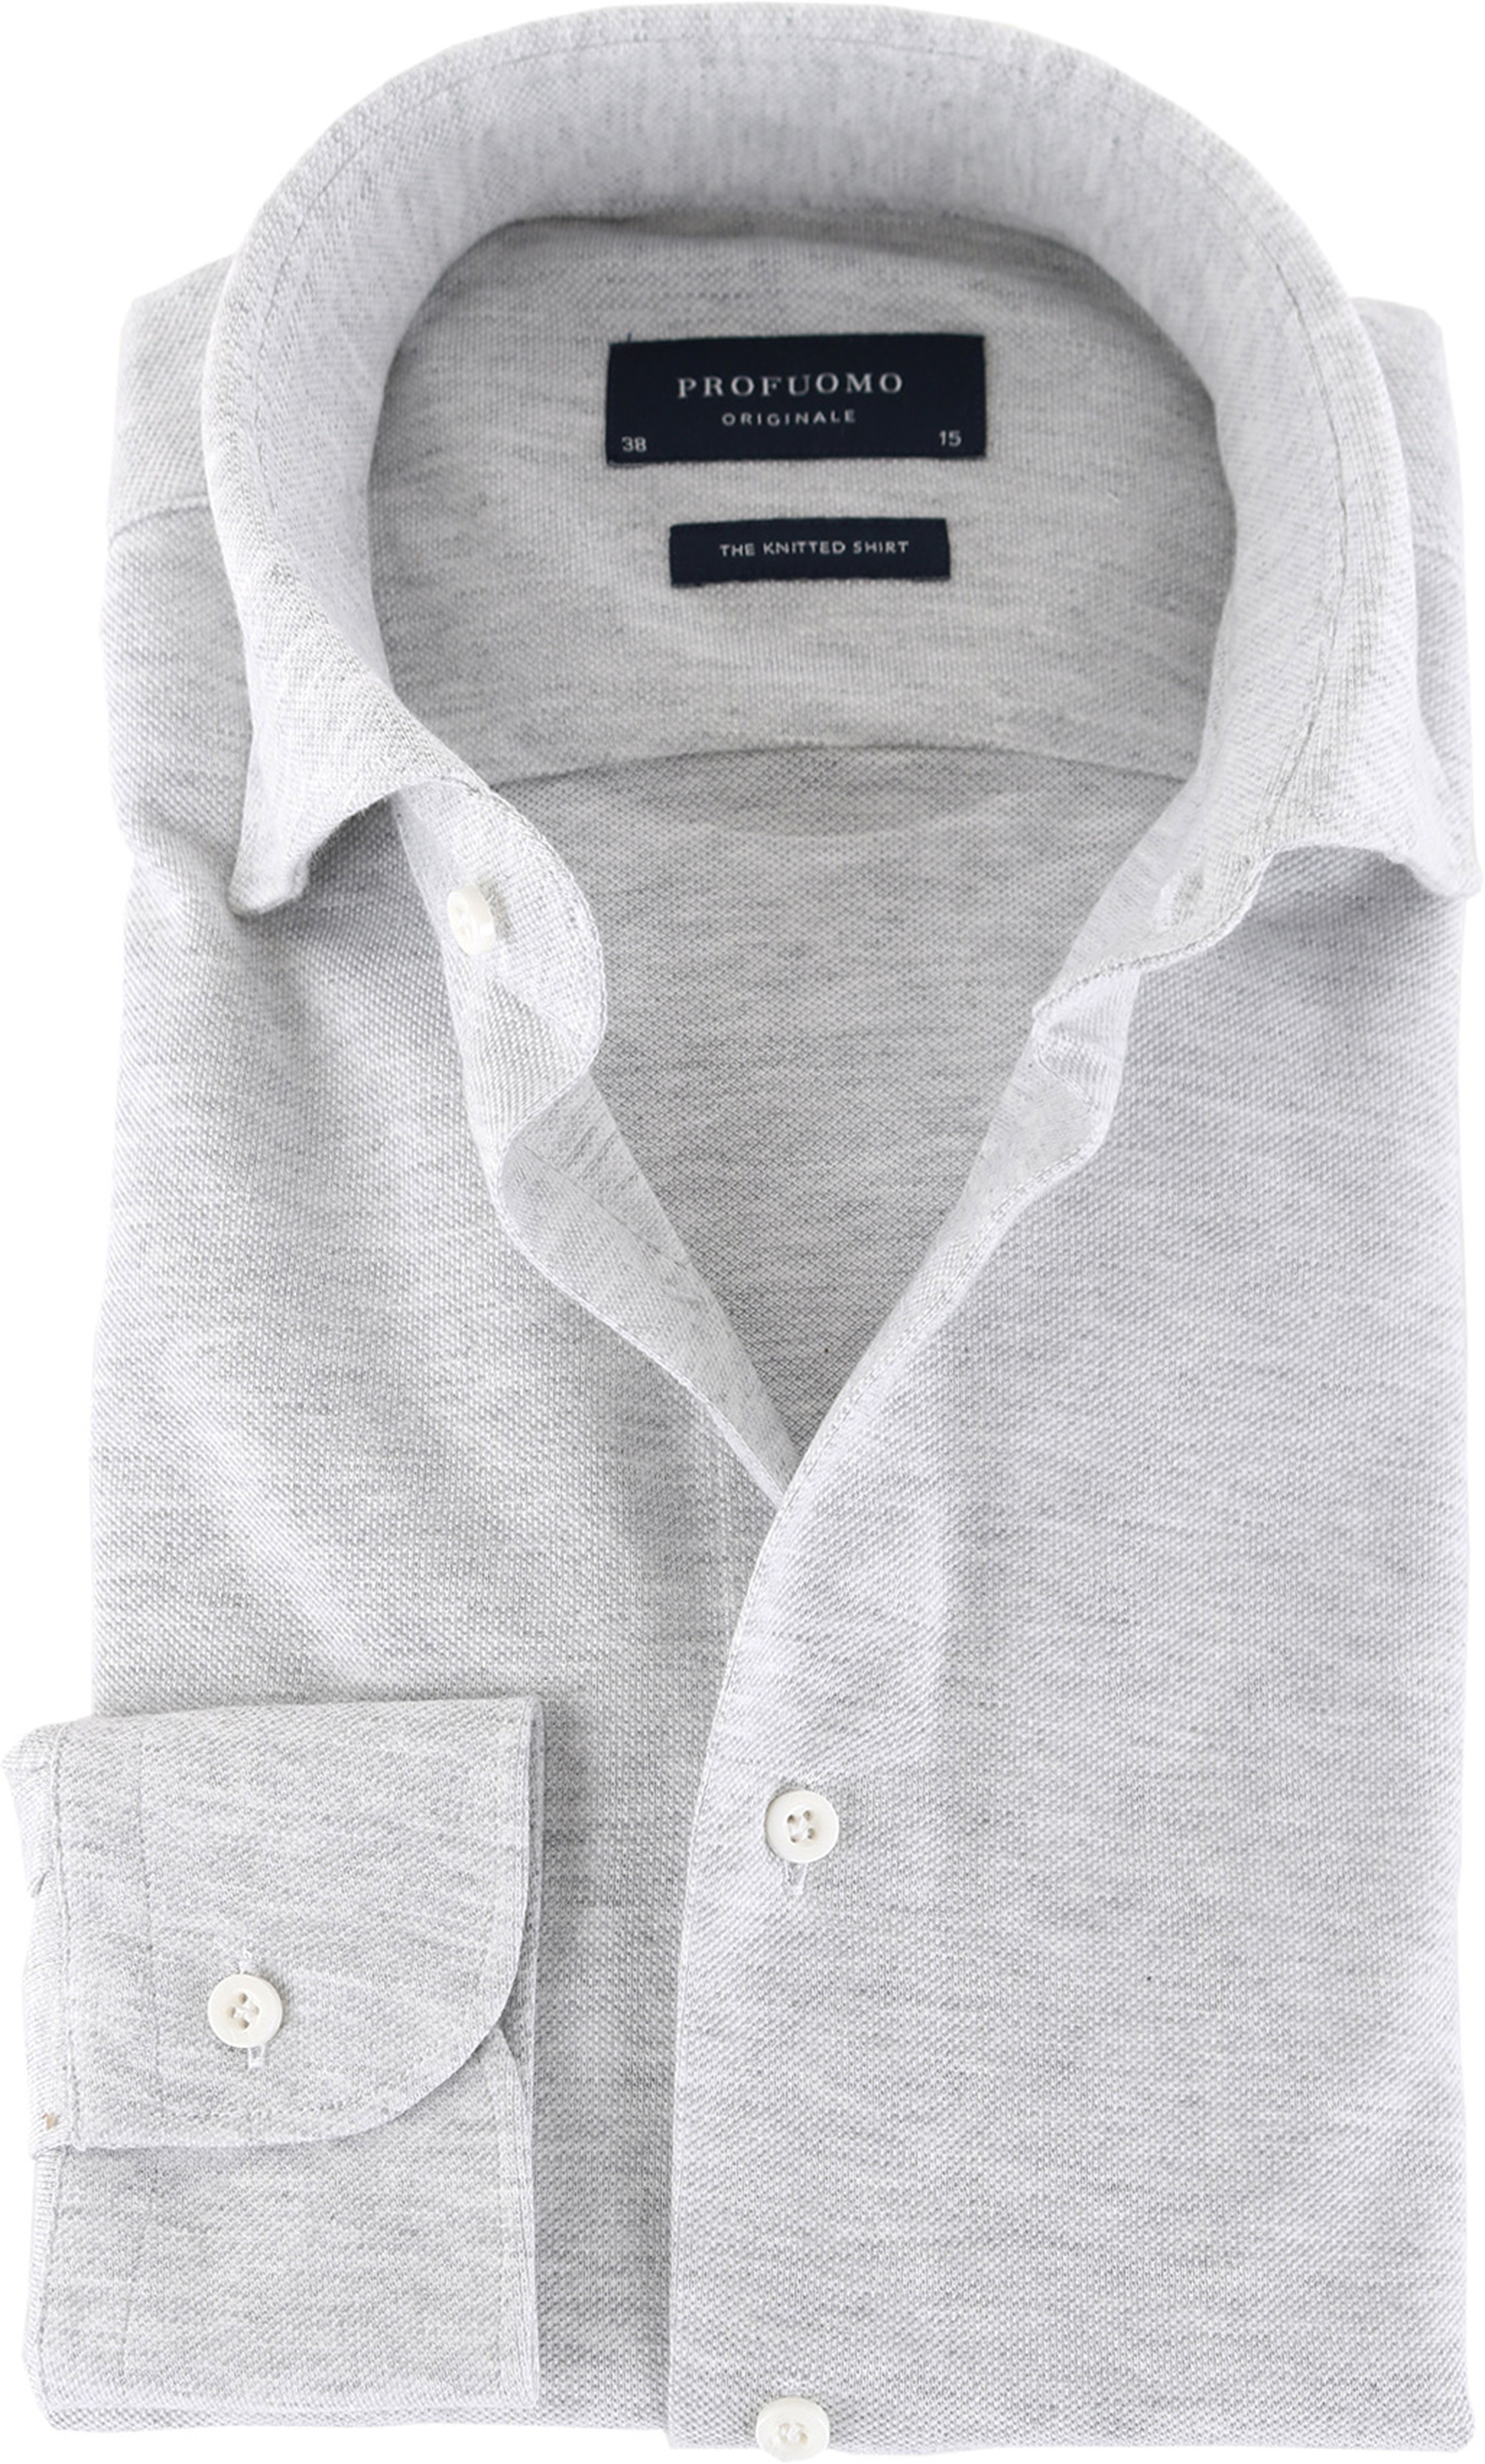 Profuomo Shirt Knitted Slim Fit Grey foto 0